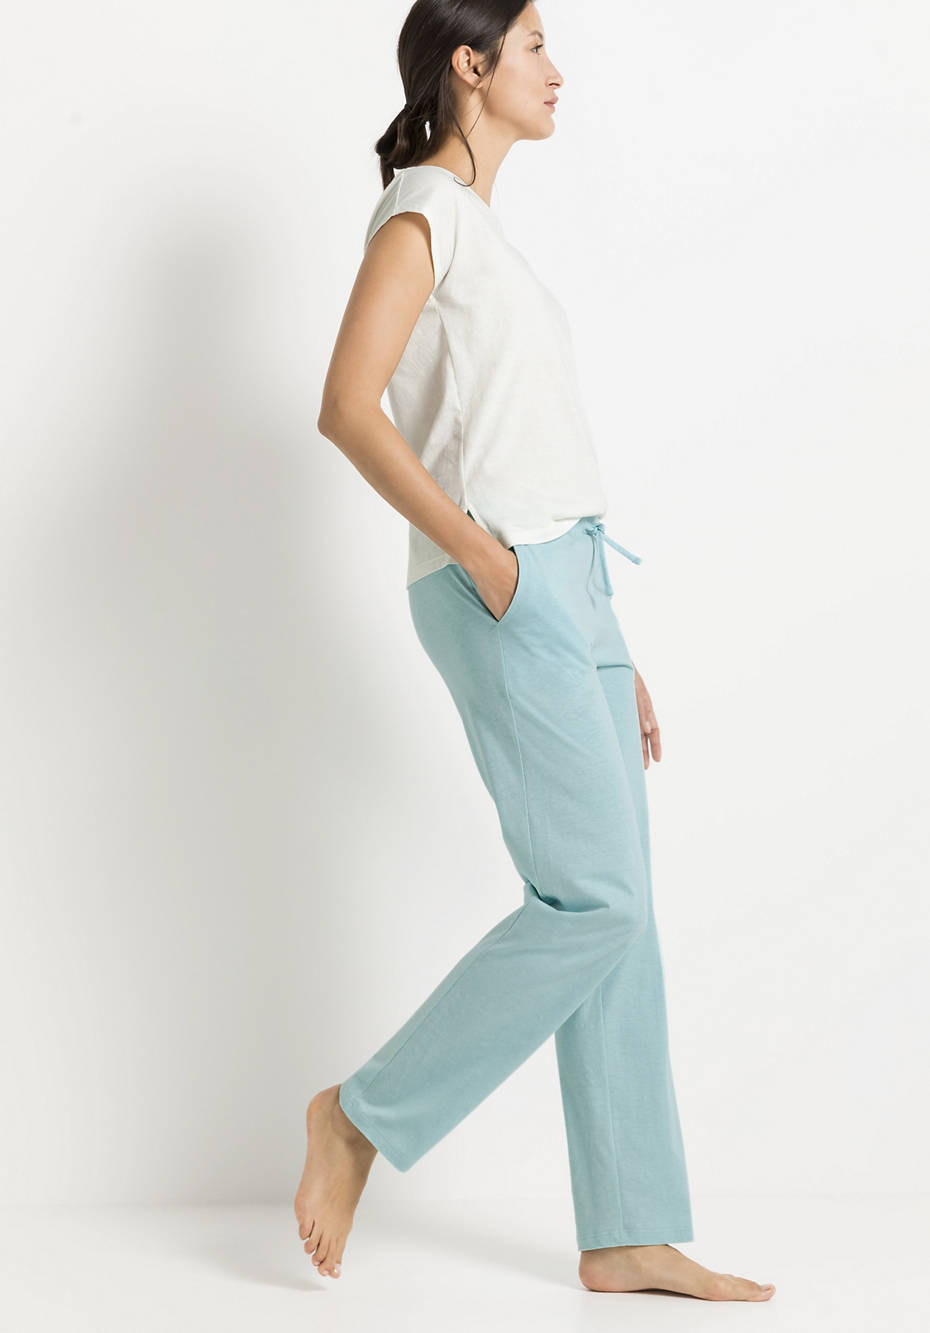 Sleep trousers made of organic cotton with linen